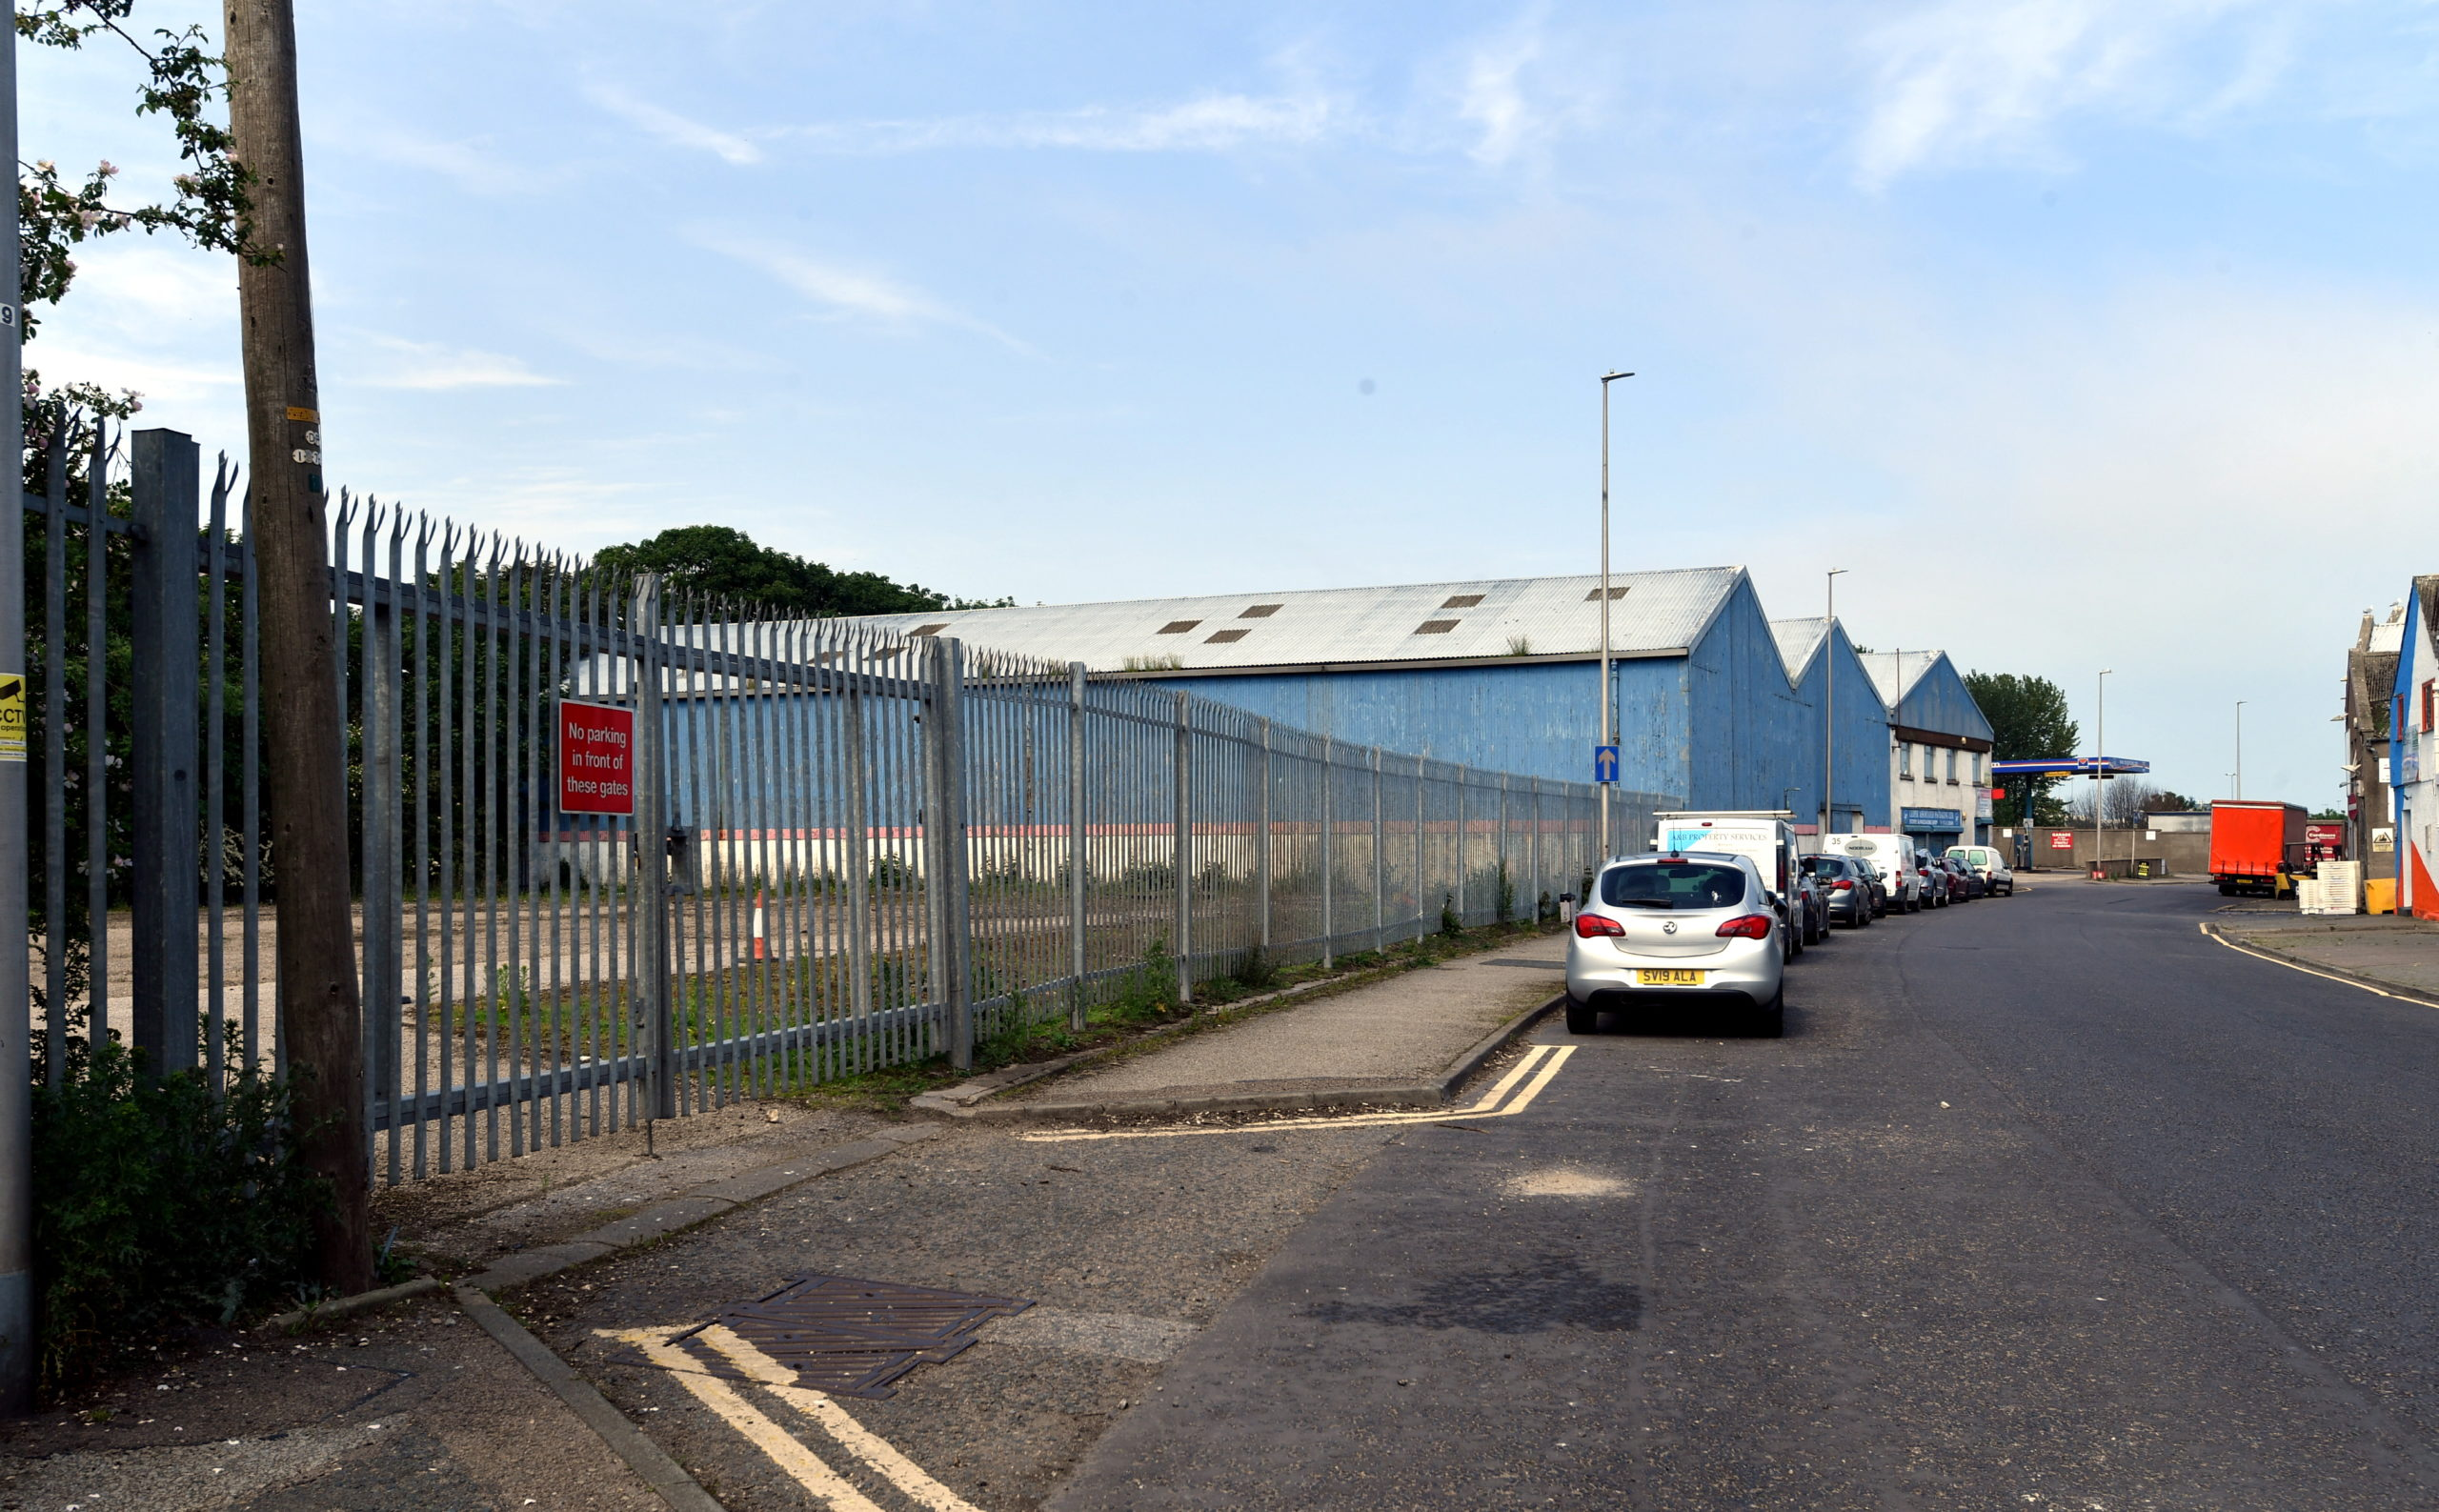 Aberdeen Harbour Board has appealed the decision to refuse permission to build 258 flats at South Esplanade West